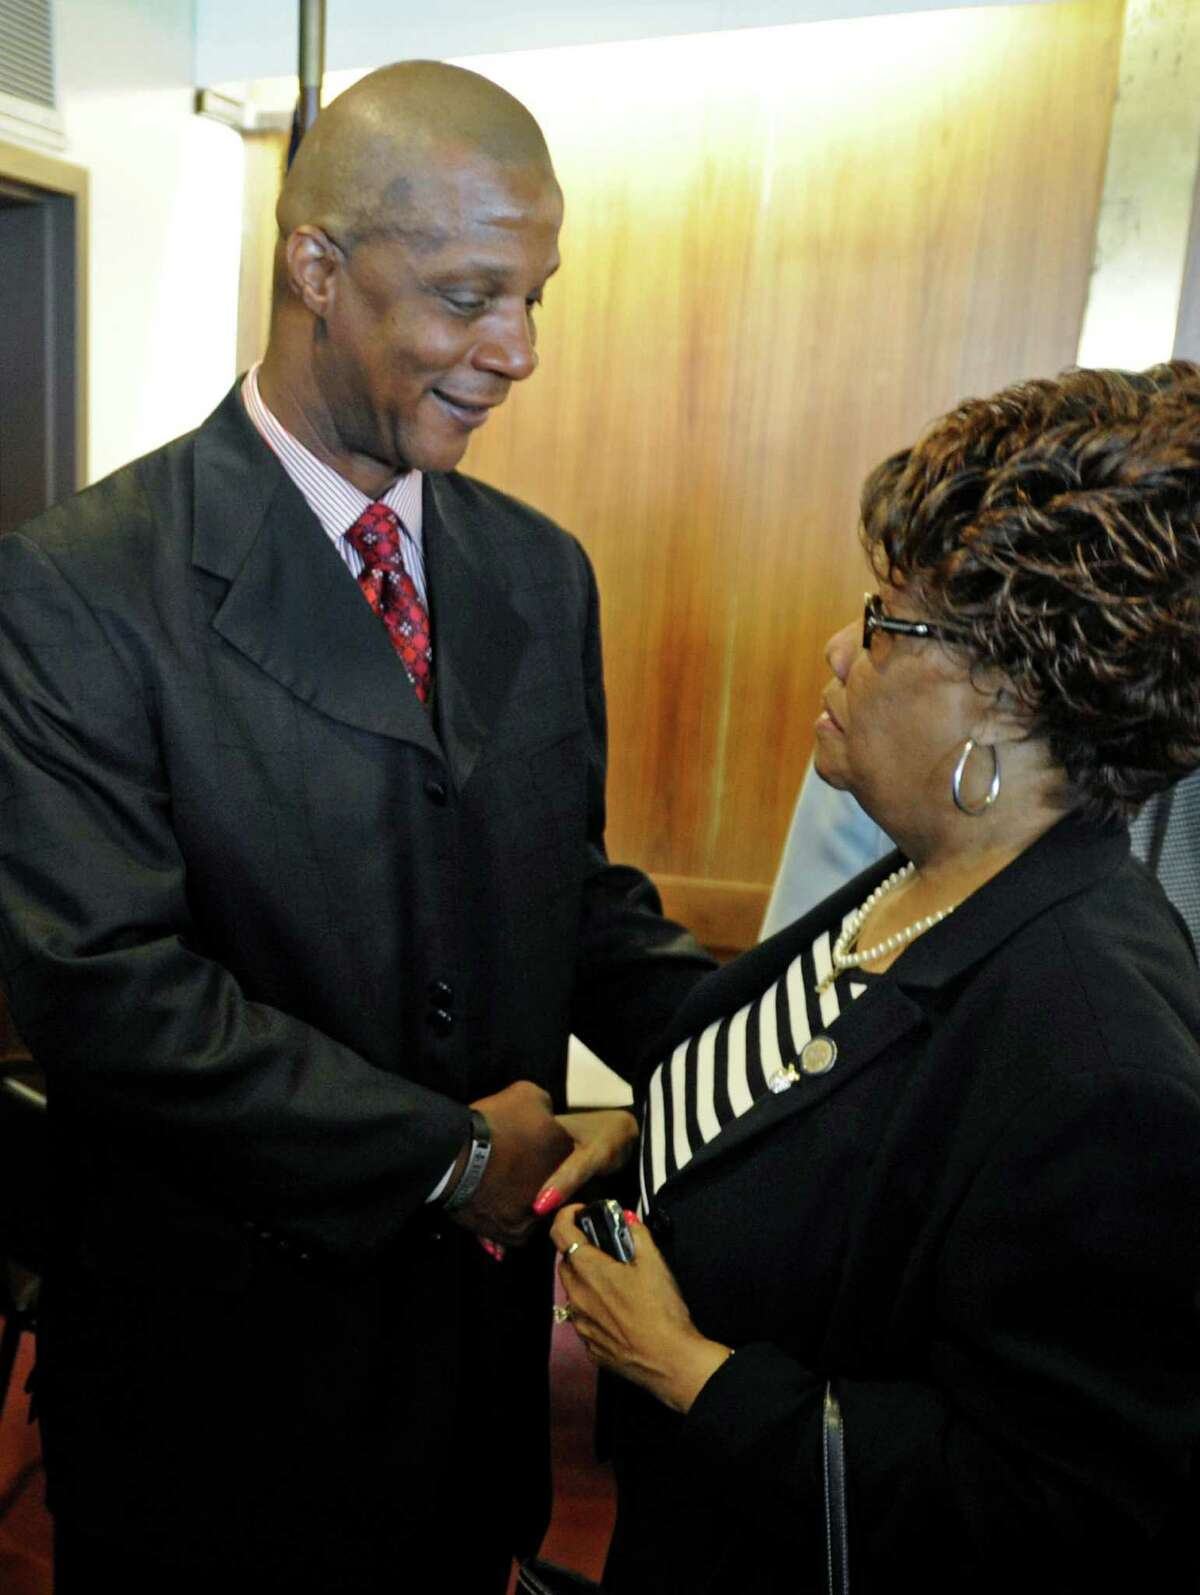 FILE - In this May 11, 2010 file photo, New York state Sen. Shirley Huntley, D-Queens, greets former New York Mets and New York Yankees slugger Darryl Strawberry at a news conference in Albany, N.Y. Huntley says she expects to be arrested Monday, Aug. 27, 2012, amid a continuing investigation by Attorney General Eric Schneiderman into state grants she provided nonprofit organizations. (AP Photo/Tim Roske, File)